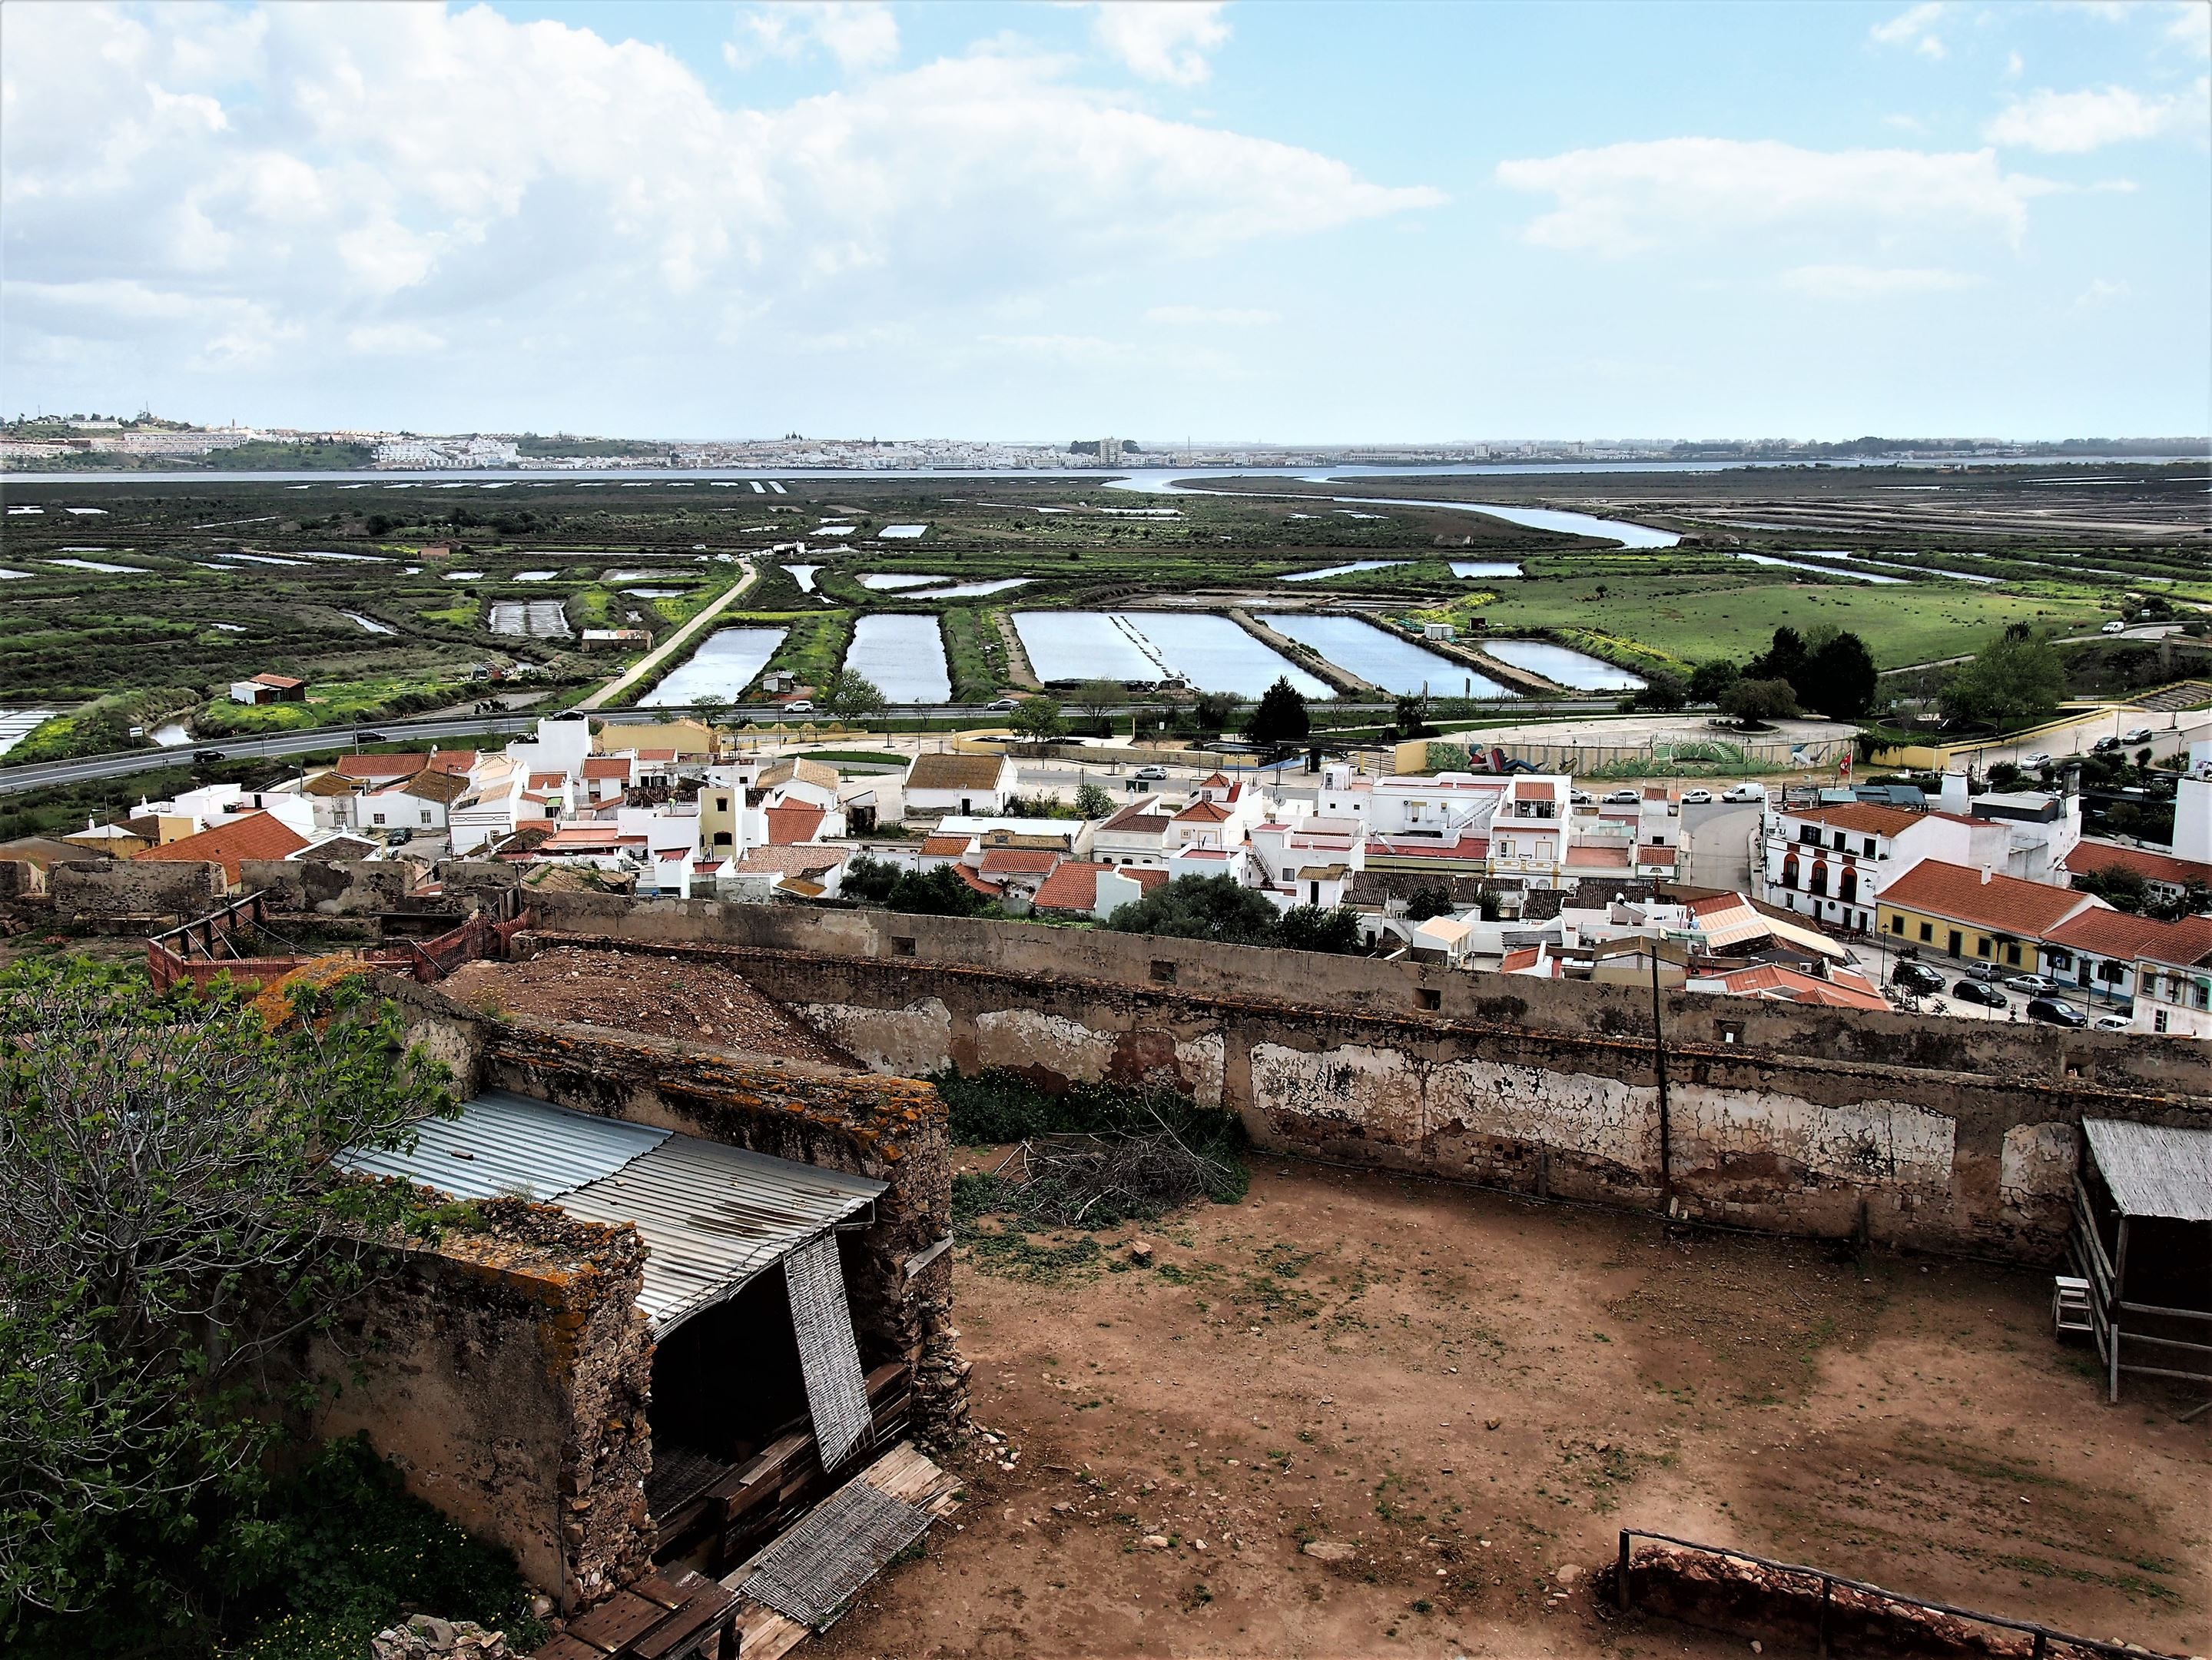 The town of Ayamonte in Spain at the top of the picture, with the Guadiana river just below dividing Spain and Portugal. The salt pans of the Castro Marim with some remains of the castle at the bottom